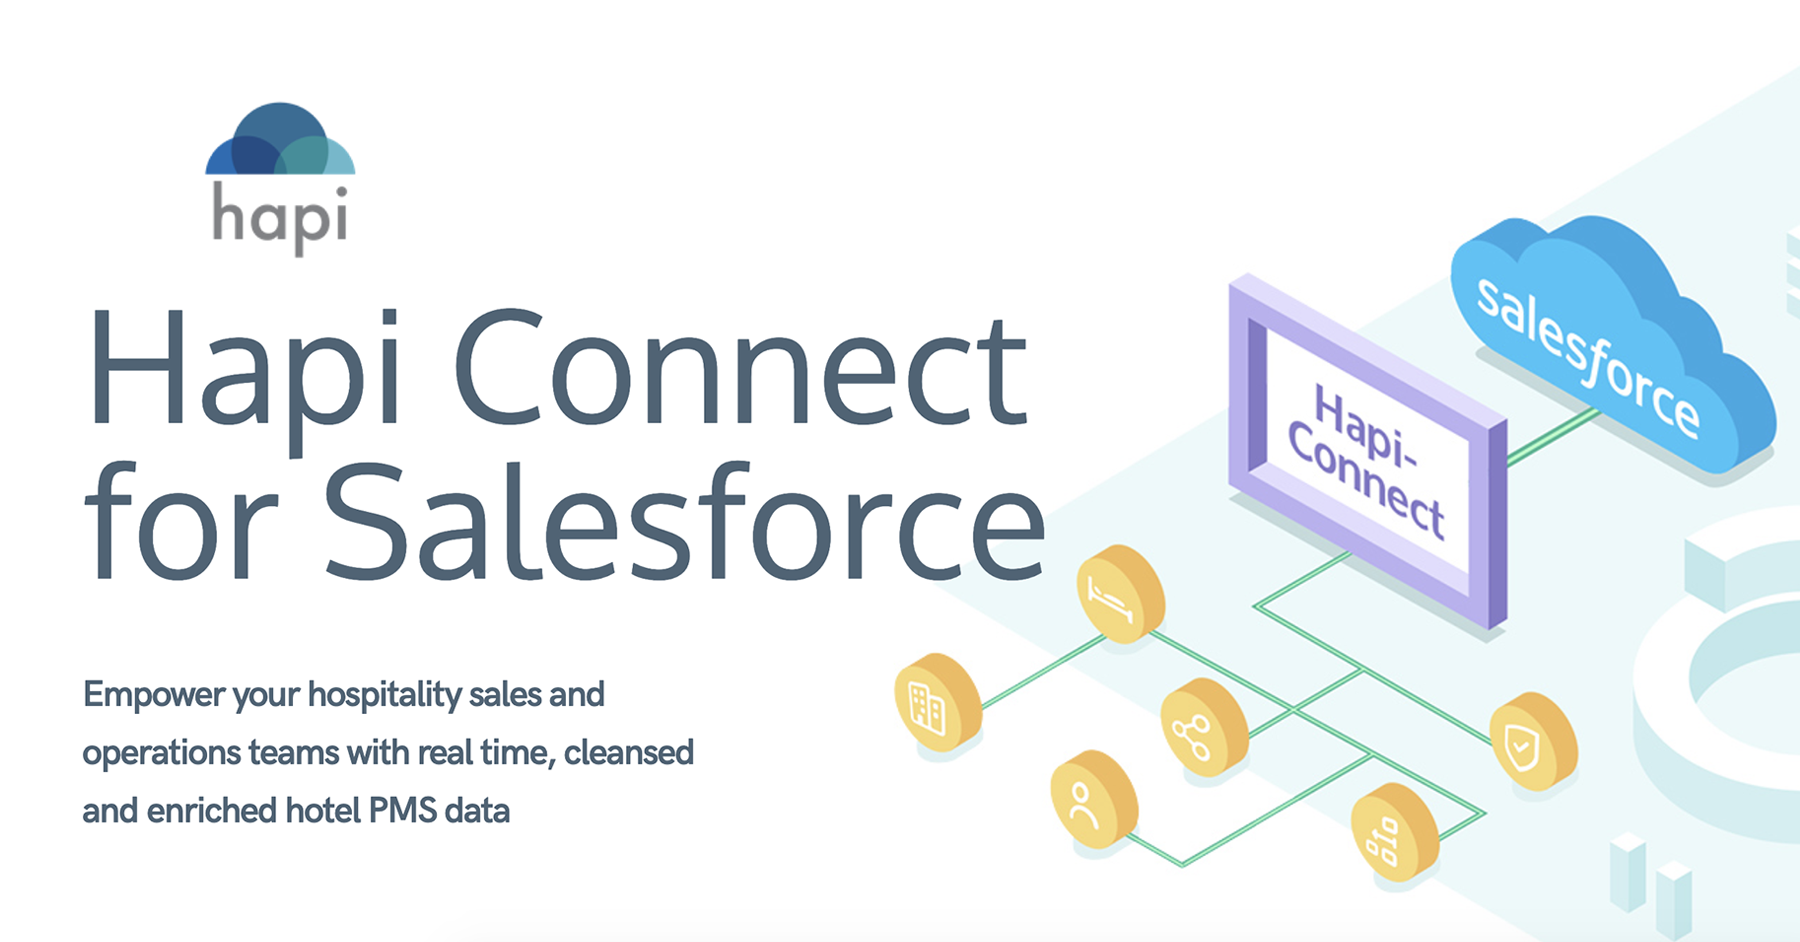 Hapi's Connector App for Salesforce Goes Next Level